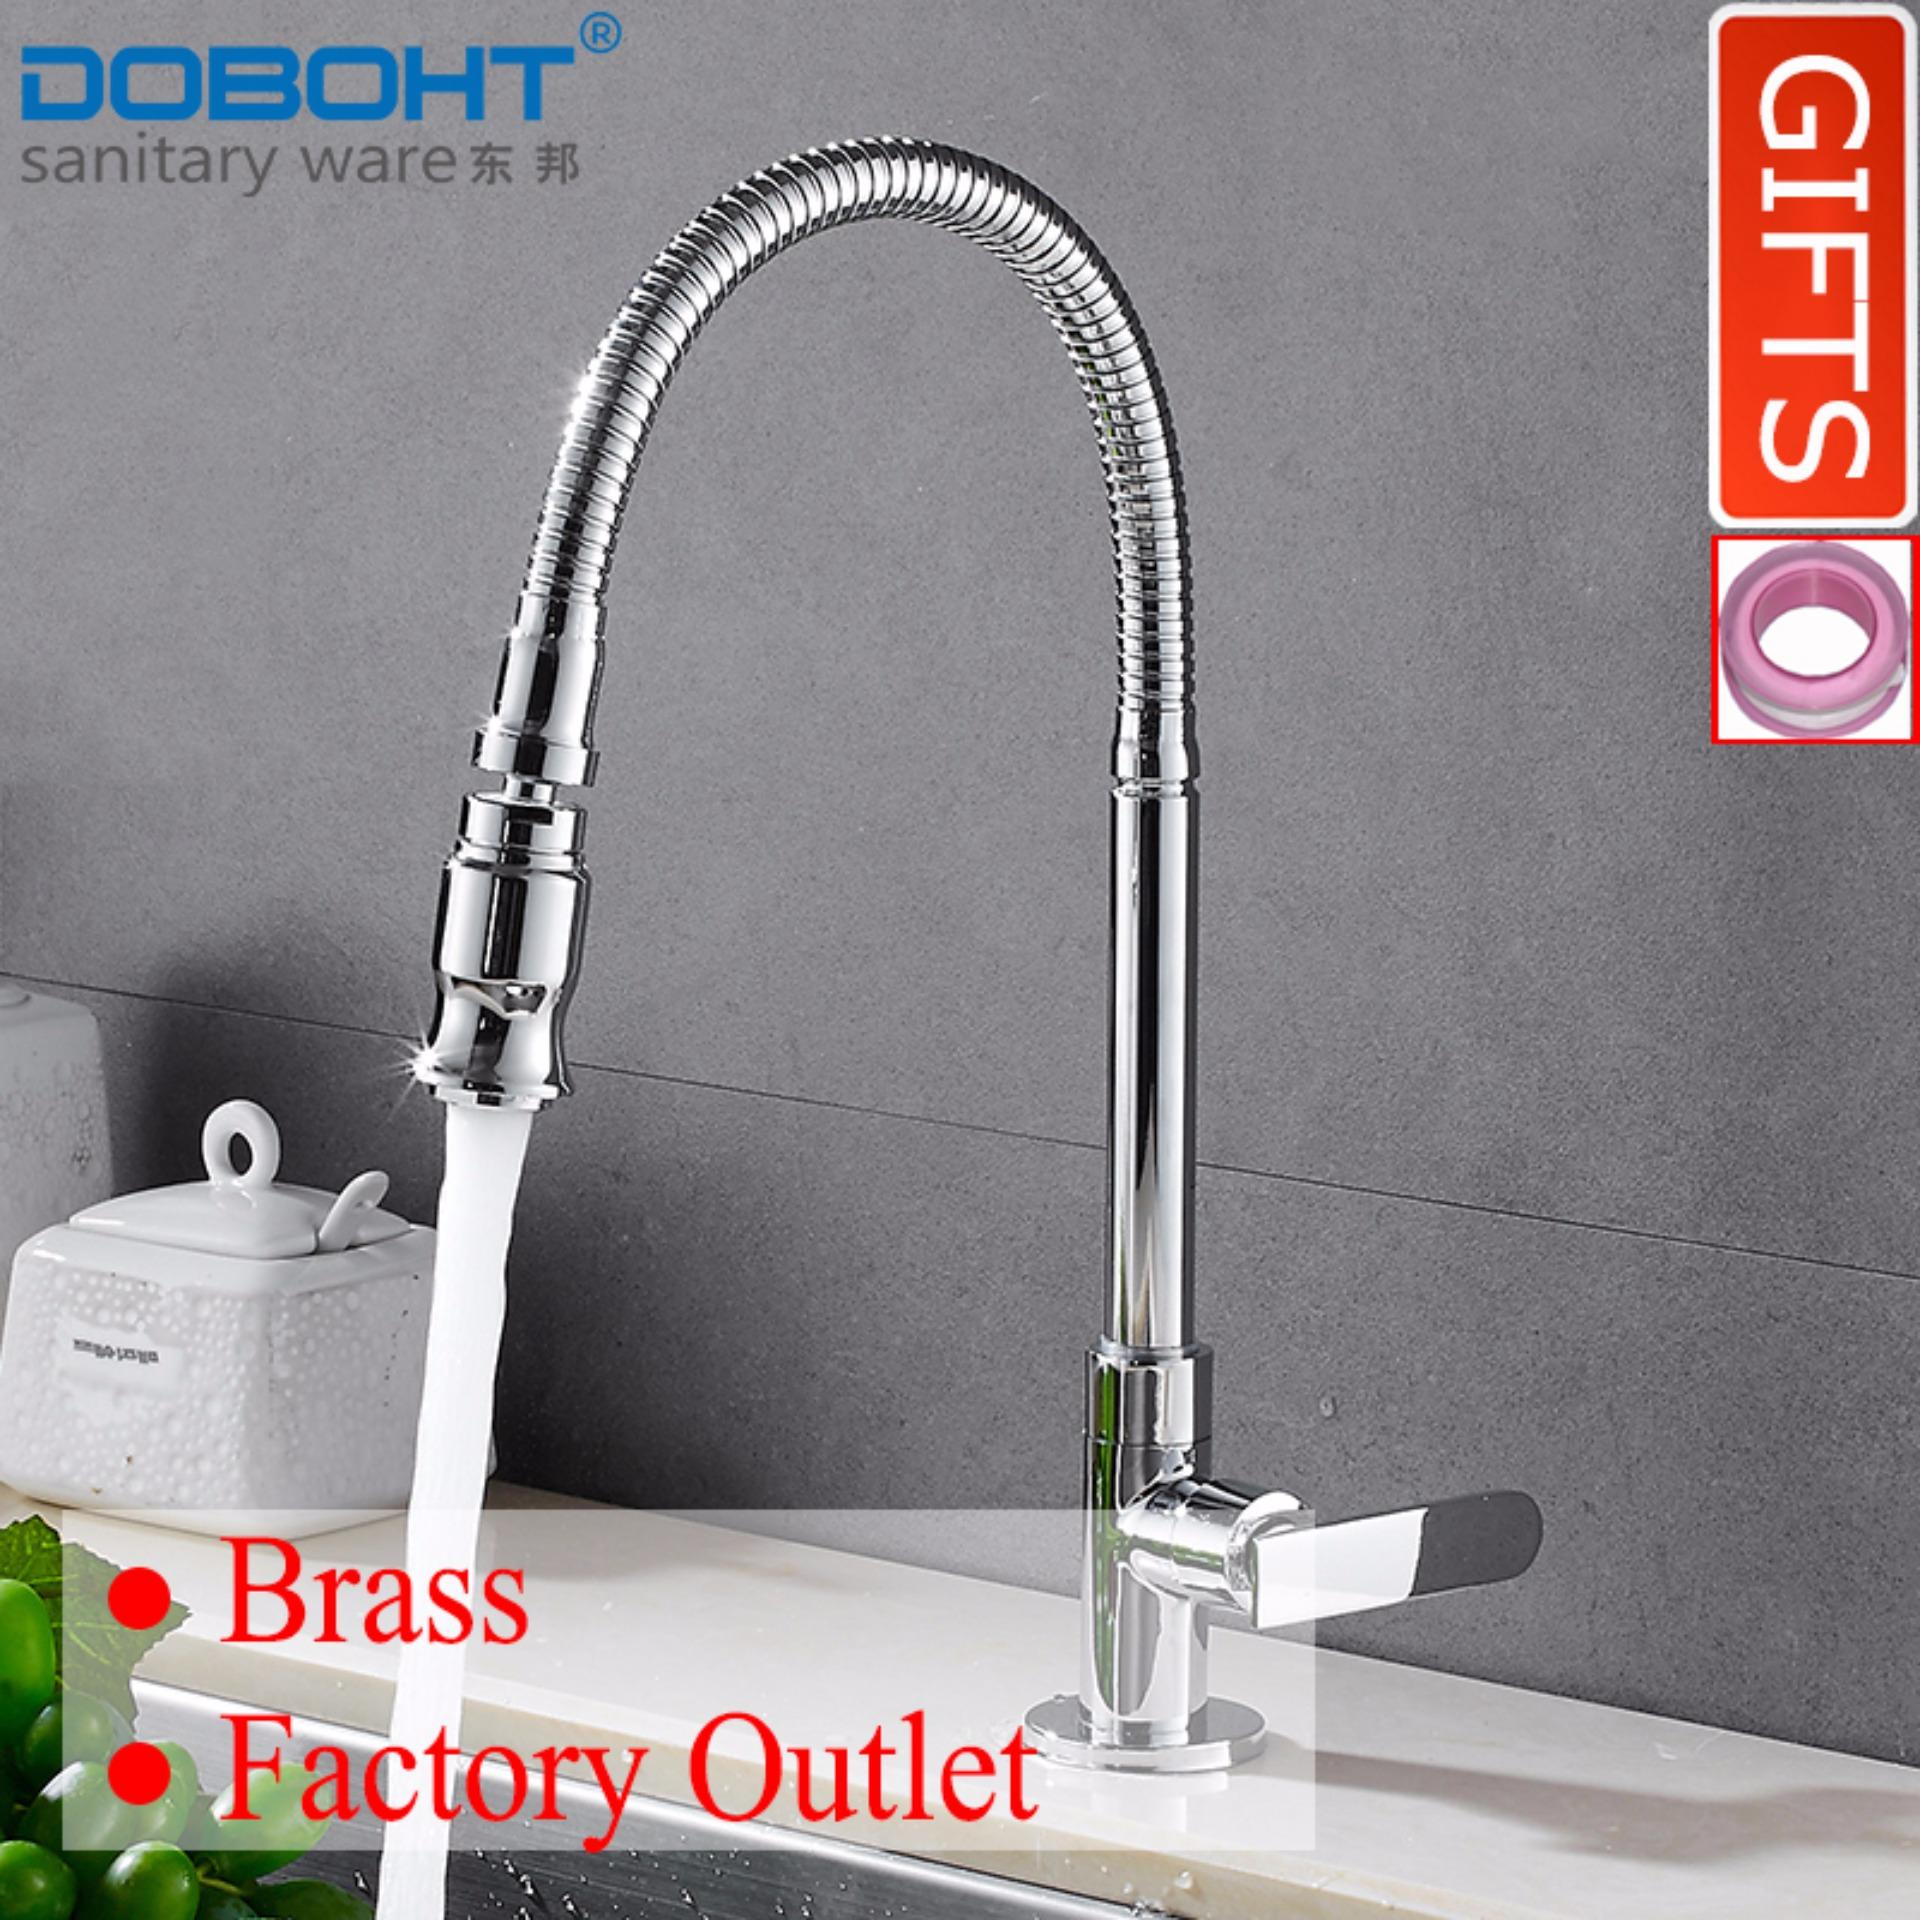 Doboht Brass Bathroom Sink Basin Kitchen Single Cold Tap Faucet Chrome Intl Coupon Code